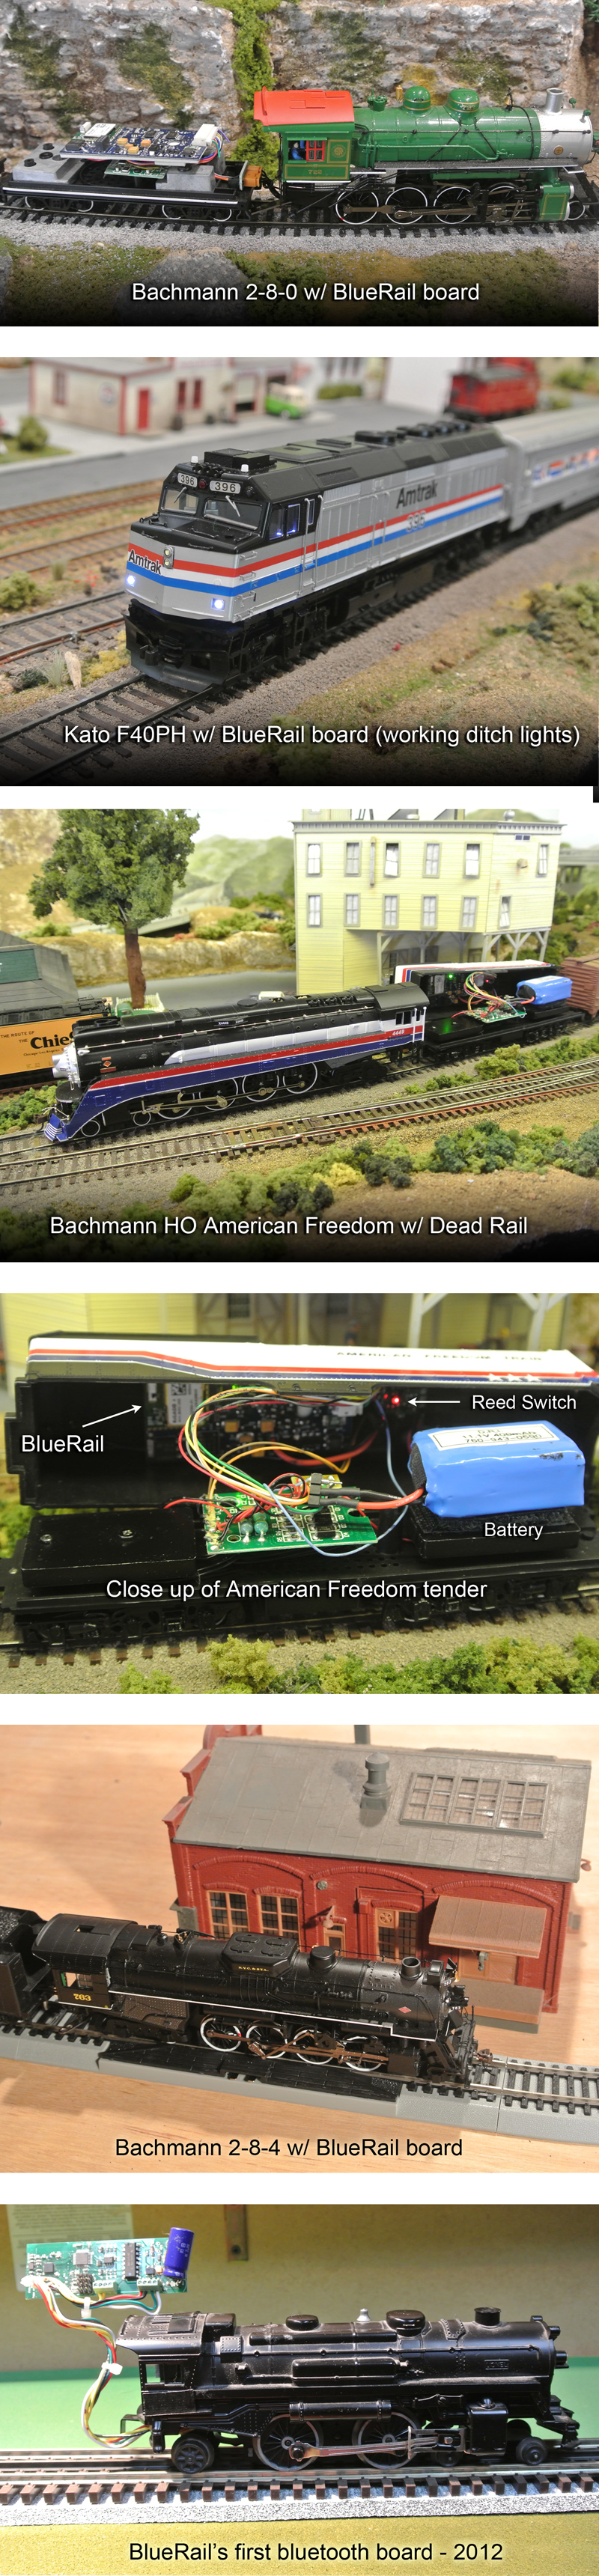 Usershowcase Bluerail Trains Mth Wiring Diagrams Drees Allpics 400